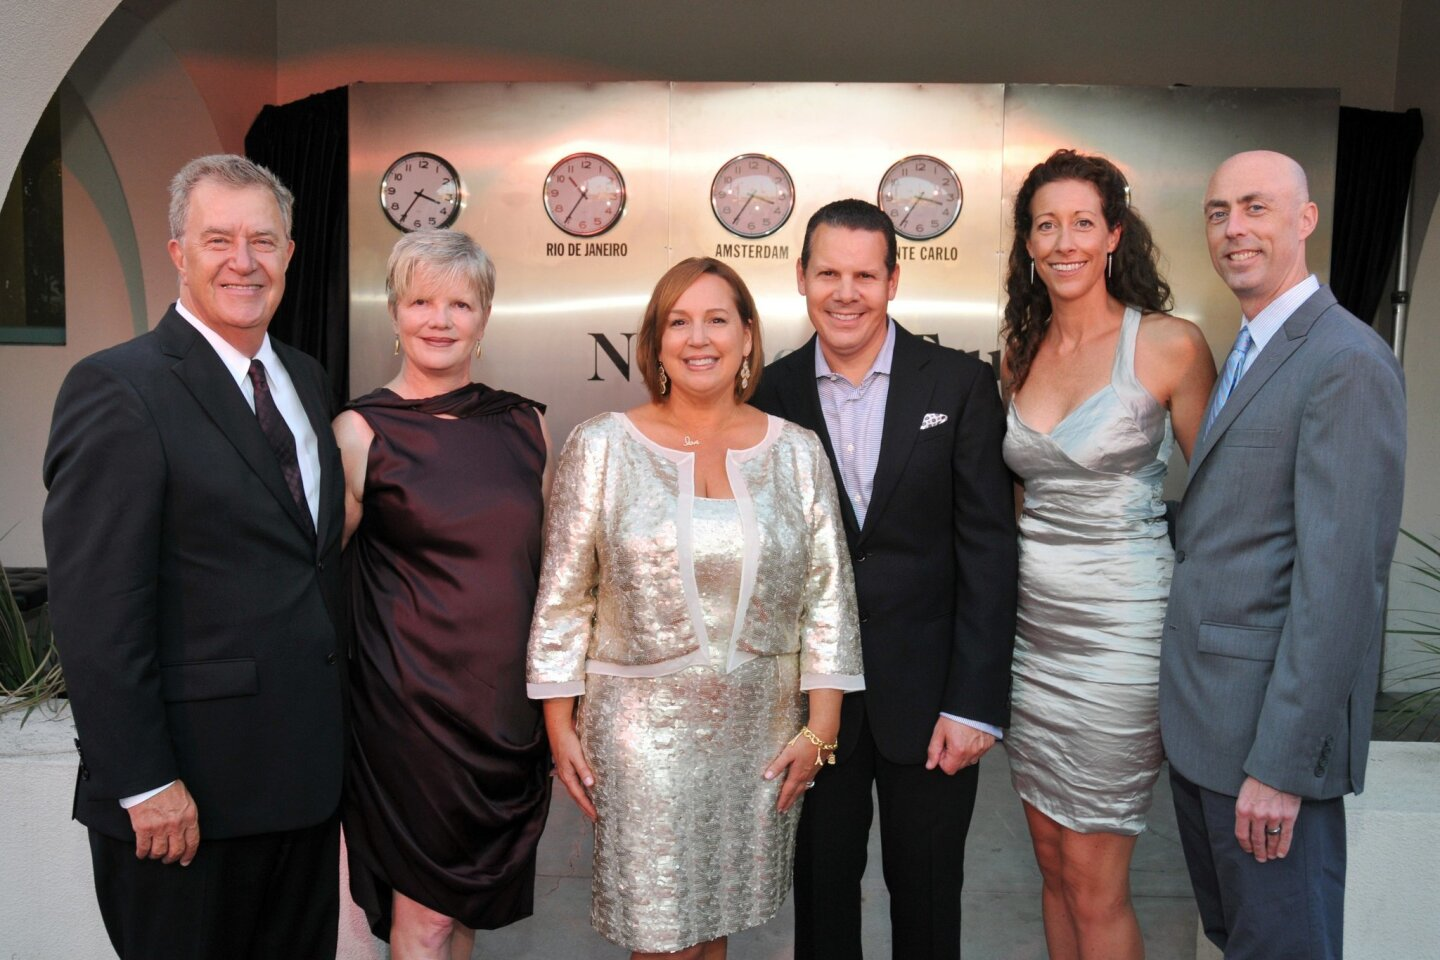 Museum of Contemporary Art San Diego CEO Hugh M. Davies and Faye Hunter, gala chairs Natasha and John Ippolito, MCASD advancement director Edie Nehls and Danny Cappiello